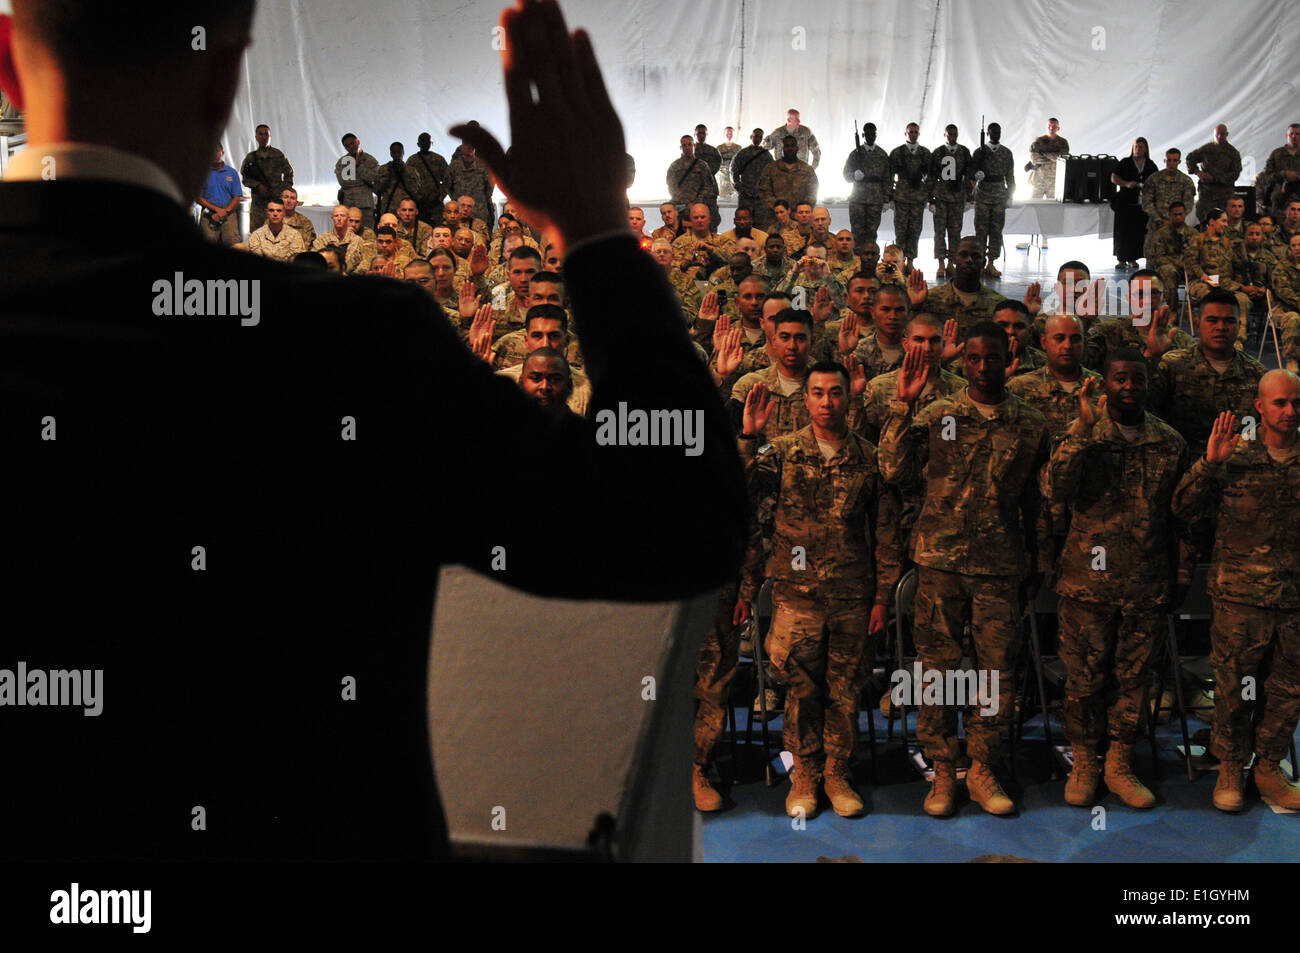 U.S. Service members recite the Oath of Allegiance given by Robert Daum during a naturalization ceremony at Bagram Air Field, A - Stock Image